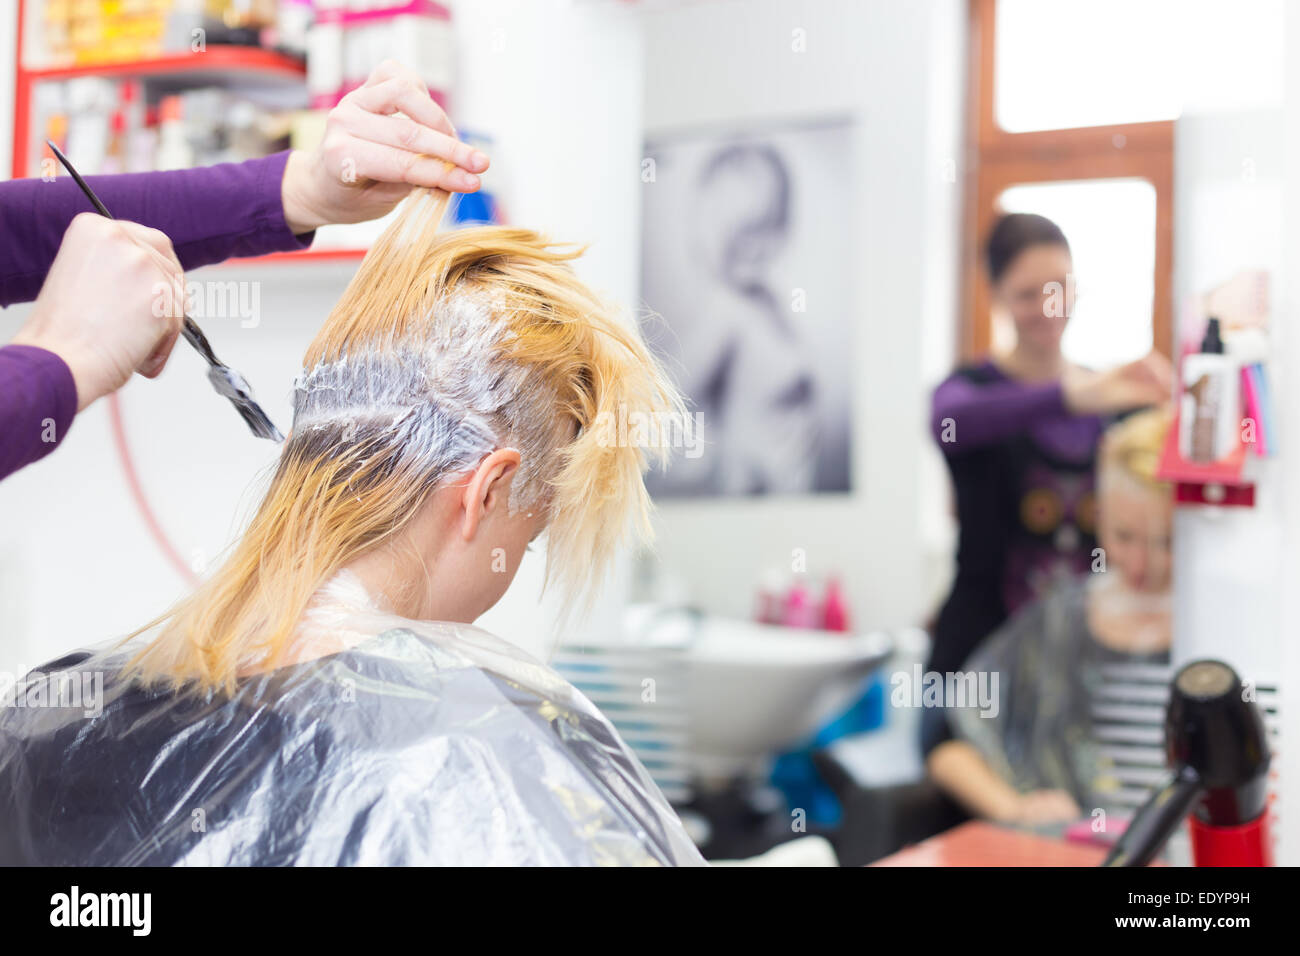 Hair Dye Stock Photos Amp Hair Dye Stock Images Alamy